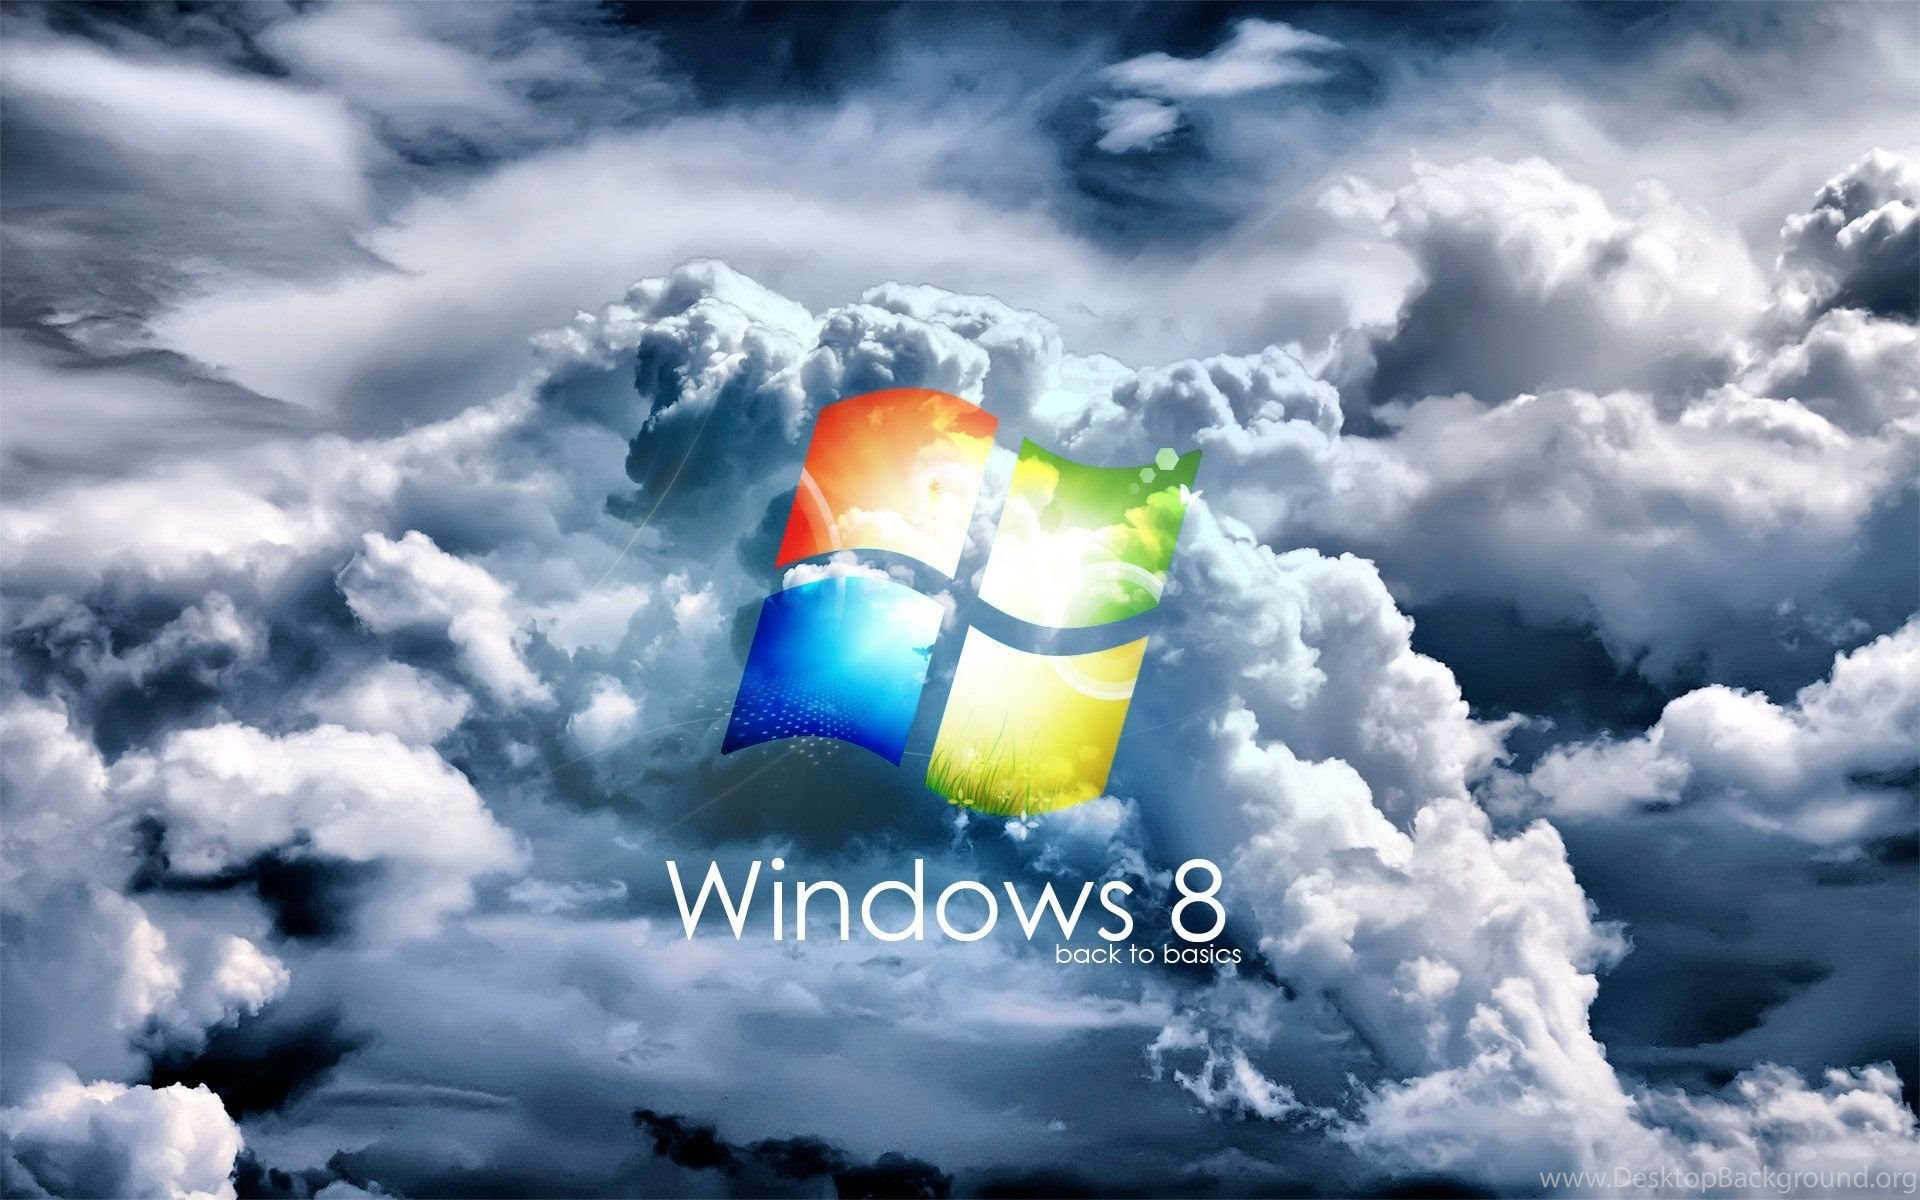 download microsoft windows 8 wallpapers pack 3 wallpapers techmynd